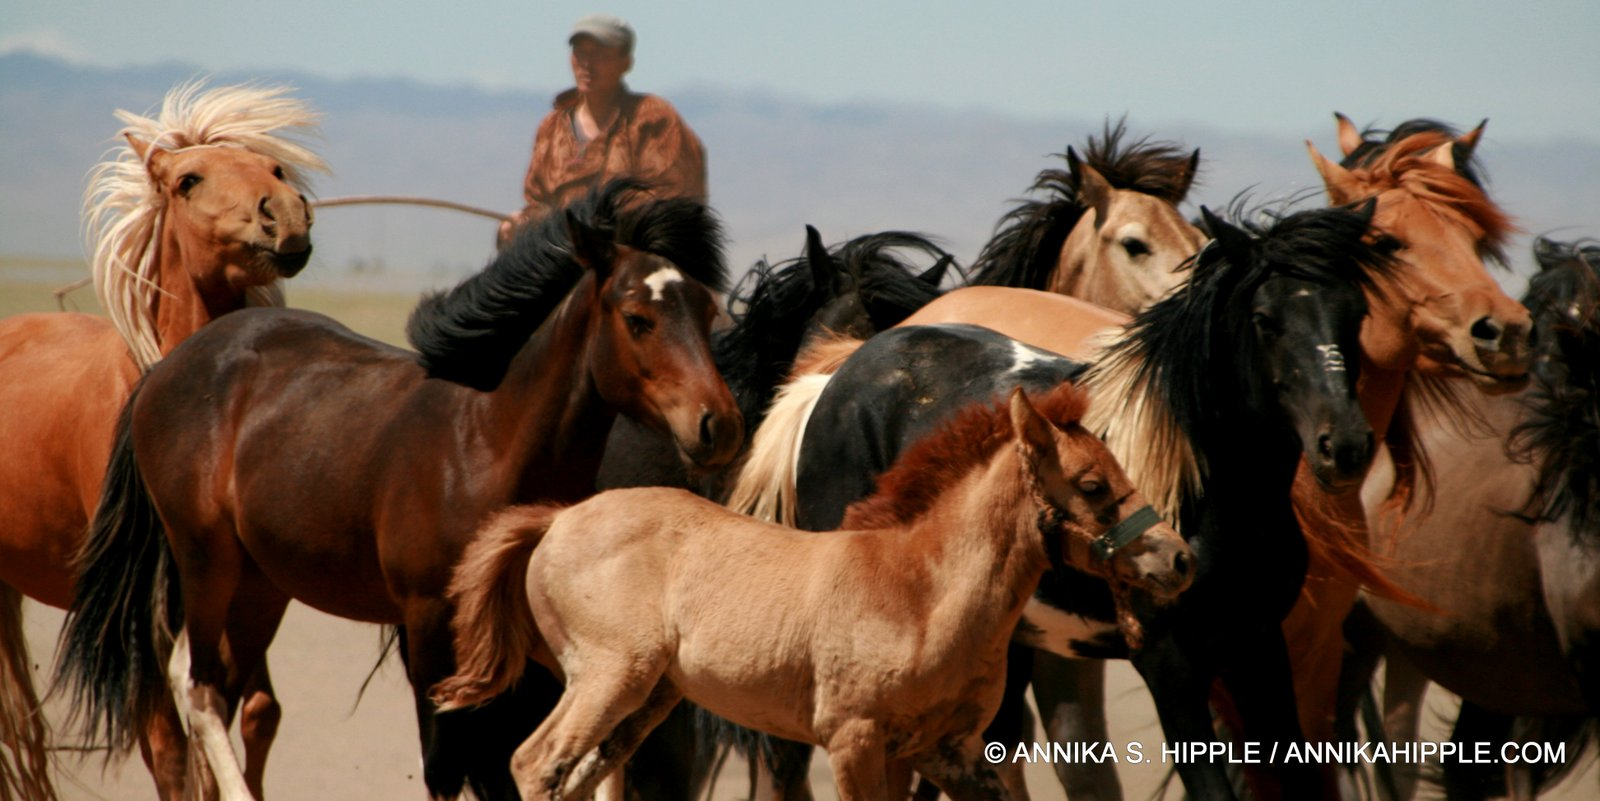 Herding horses in the Gobi